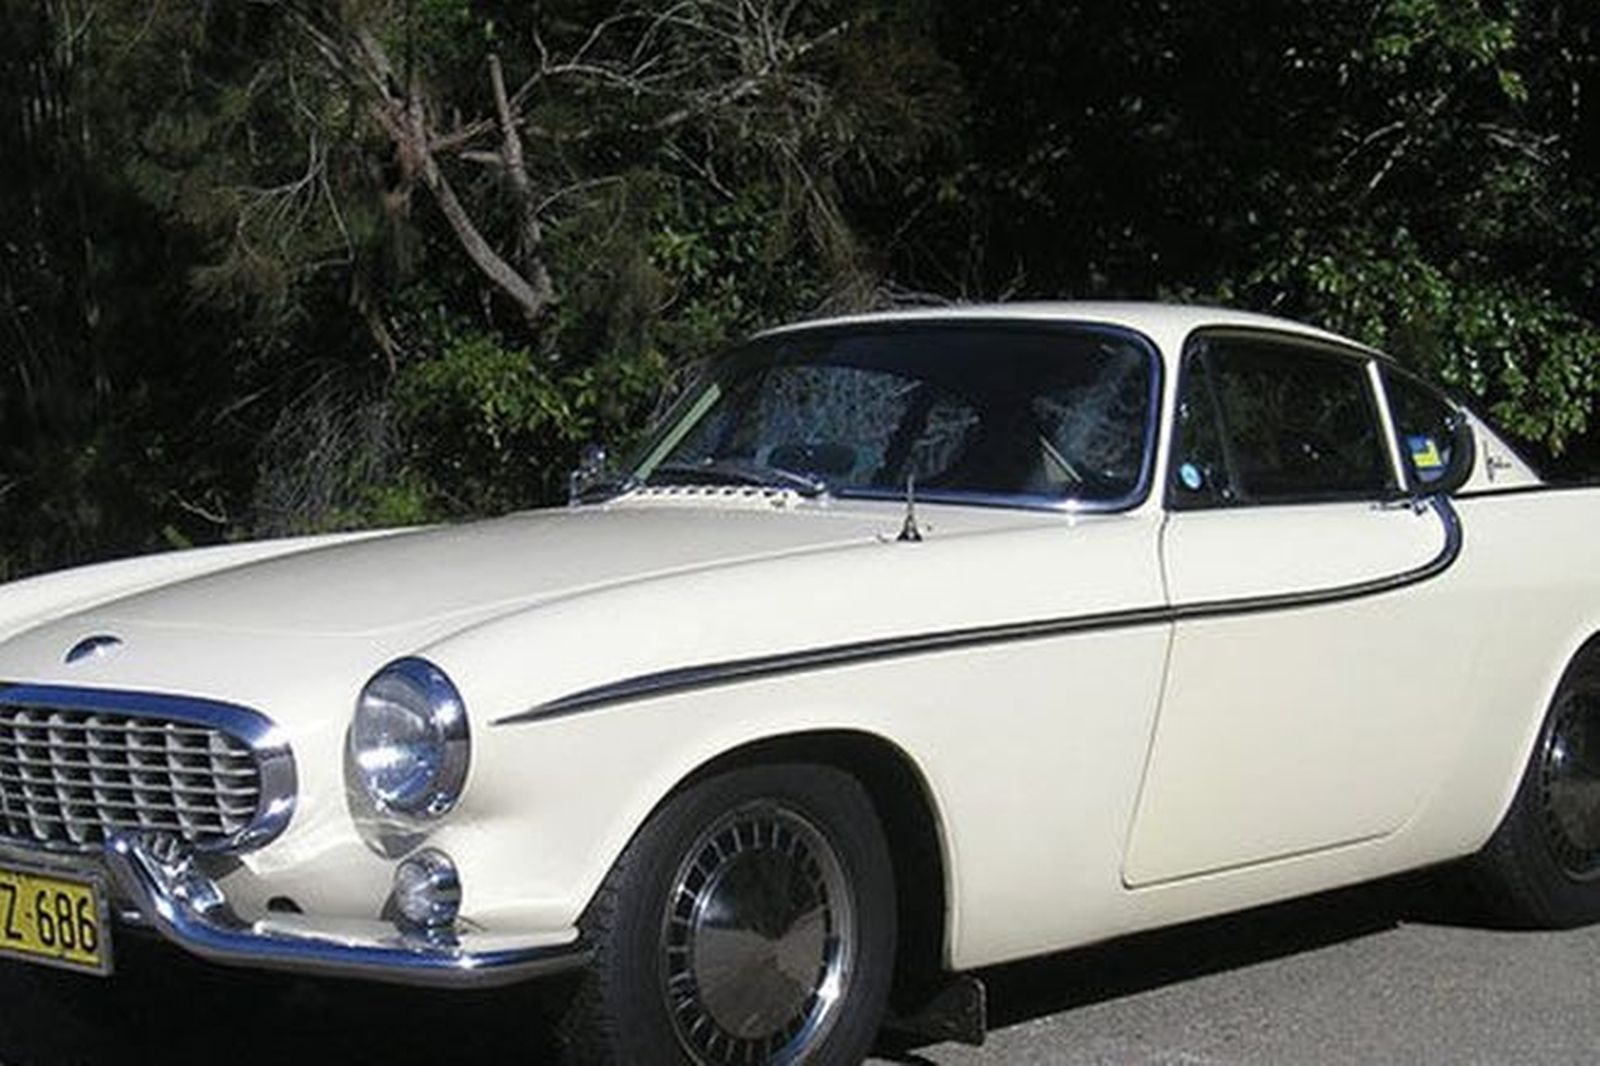 Volvo P1800 For Sale >> Sold: Volvo P1800 Coupe Auctions - Lot 22 - Shannons